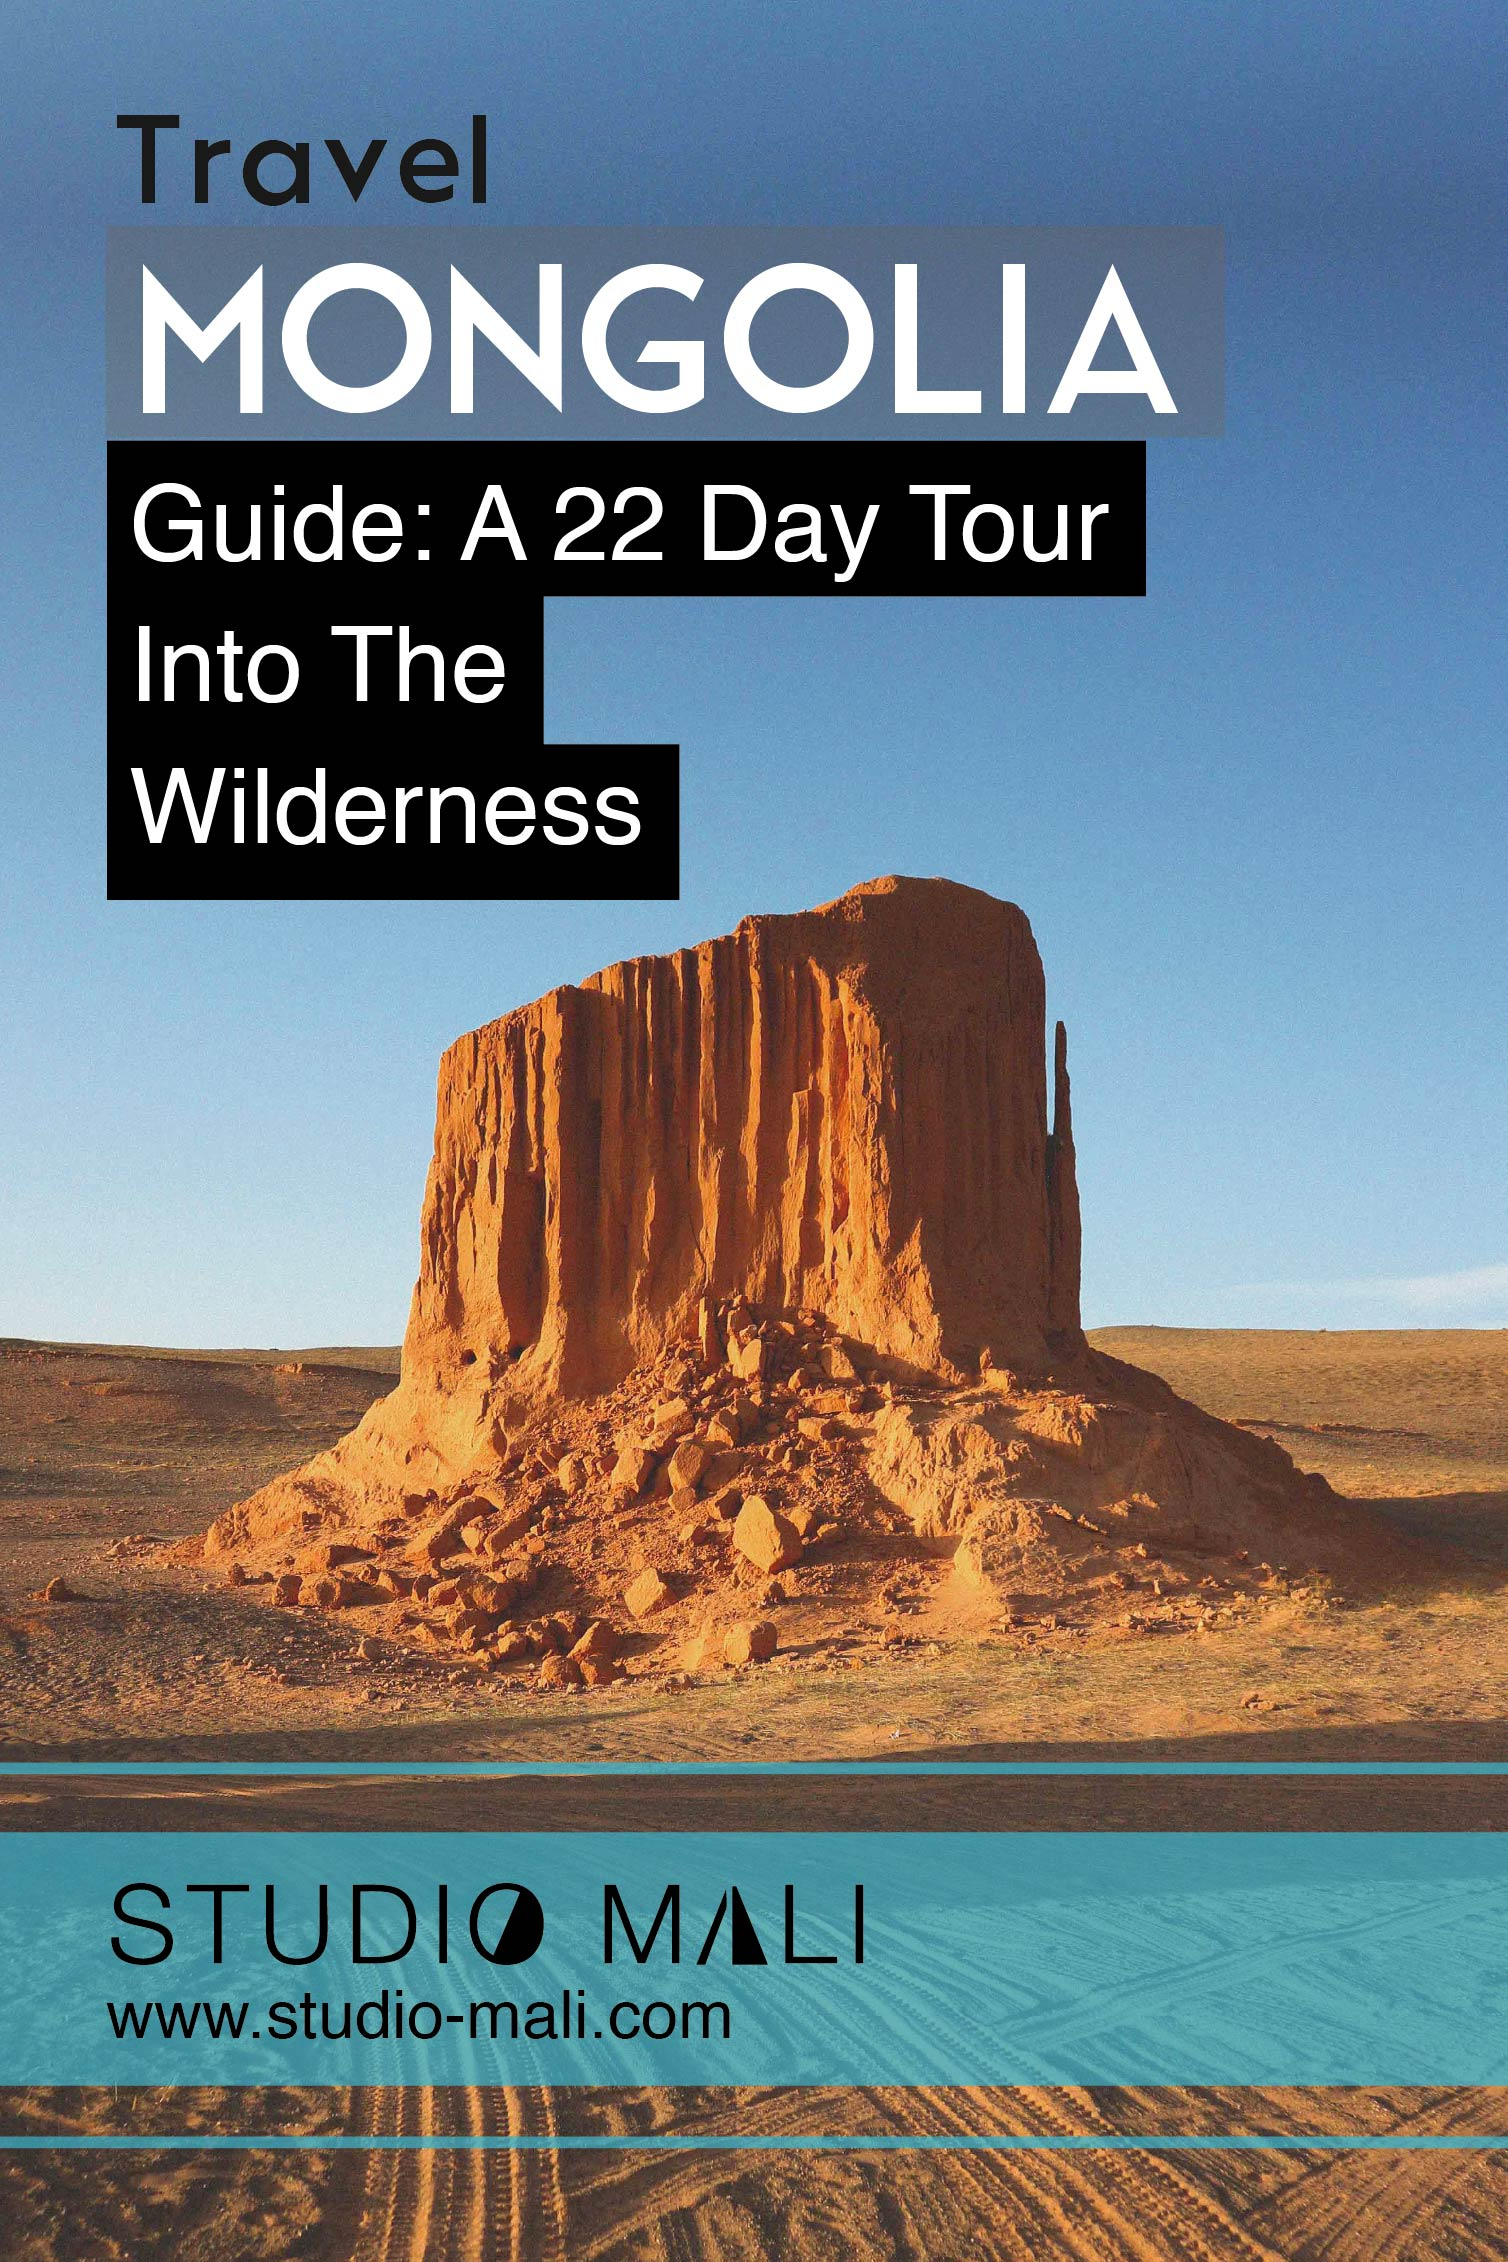 Mongolia Guide - A 22 Day Tour into the Wilderness, by Studio Mali.jpg